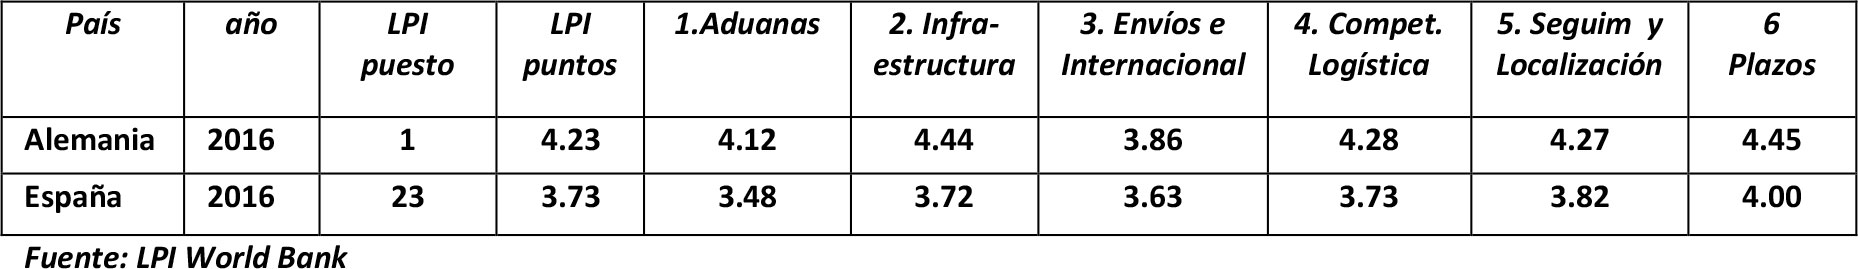 tabla-comparativa-lpi